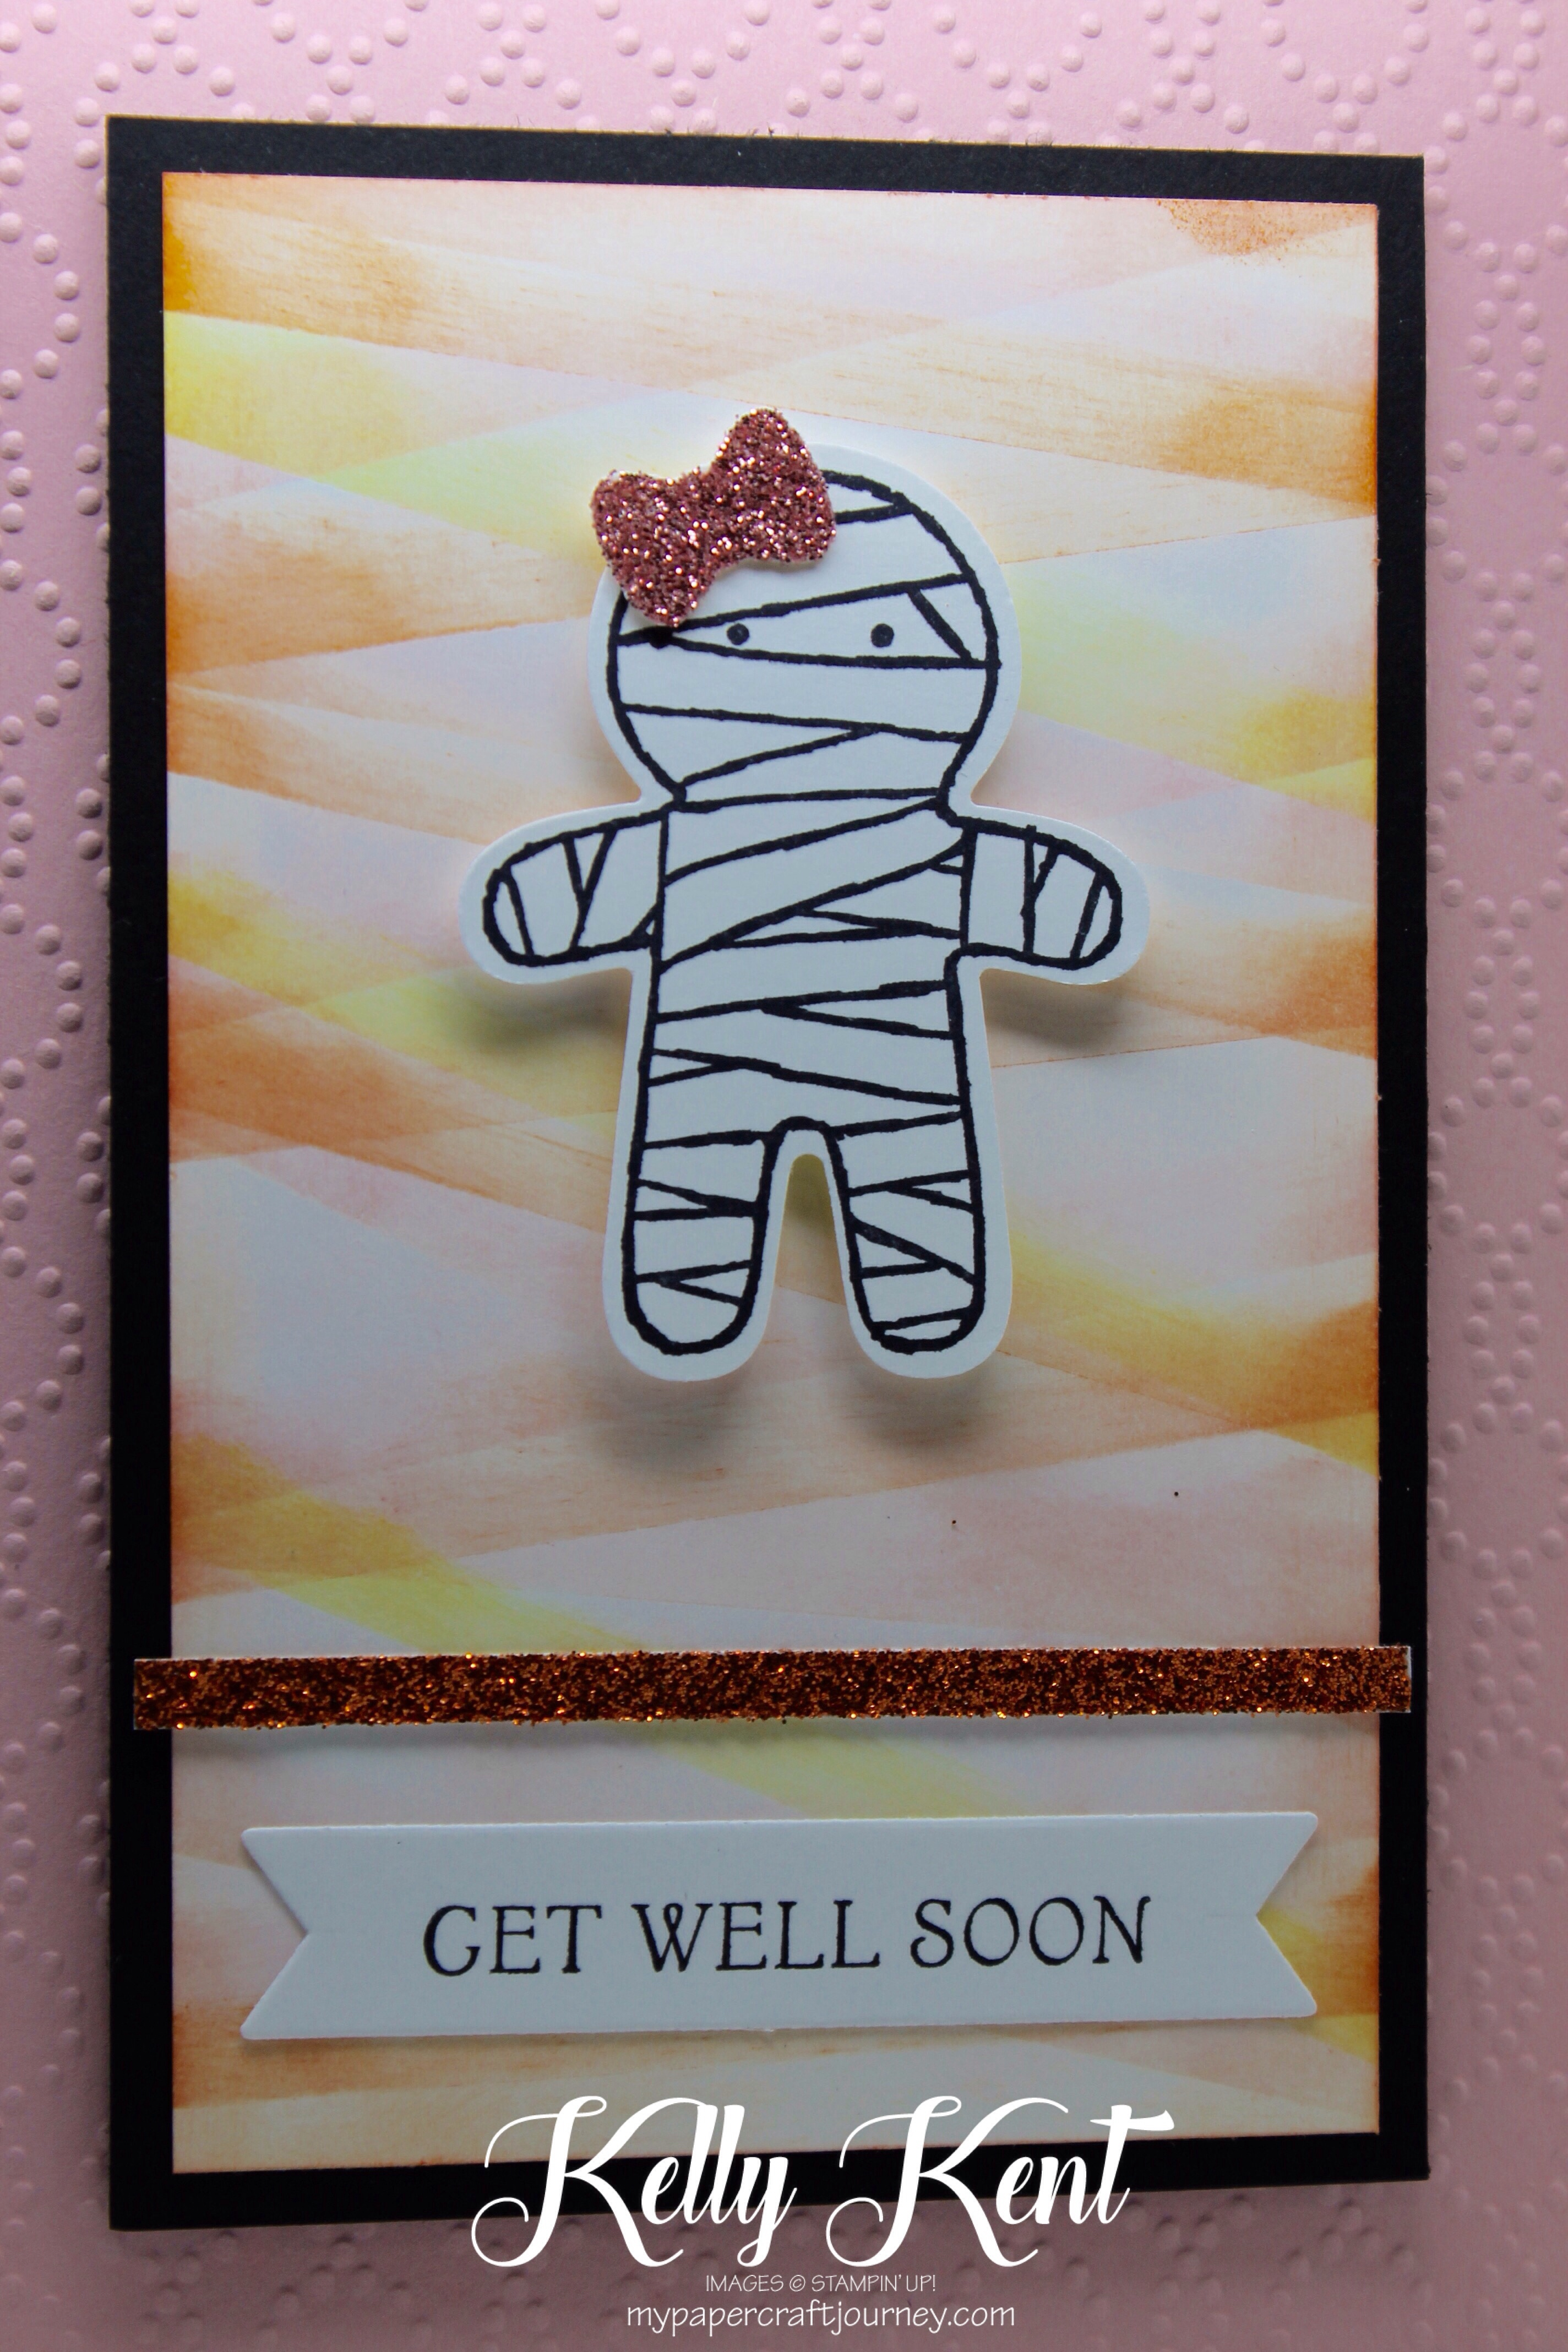 Just Add Ink #332 Colour Challenge. Get Well Soon Wrapped Up Mummy. Kelly Kent - mypapercraftjourney.com.